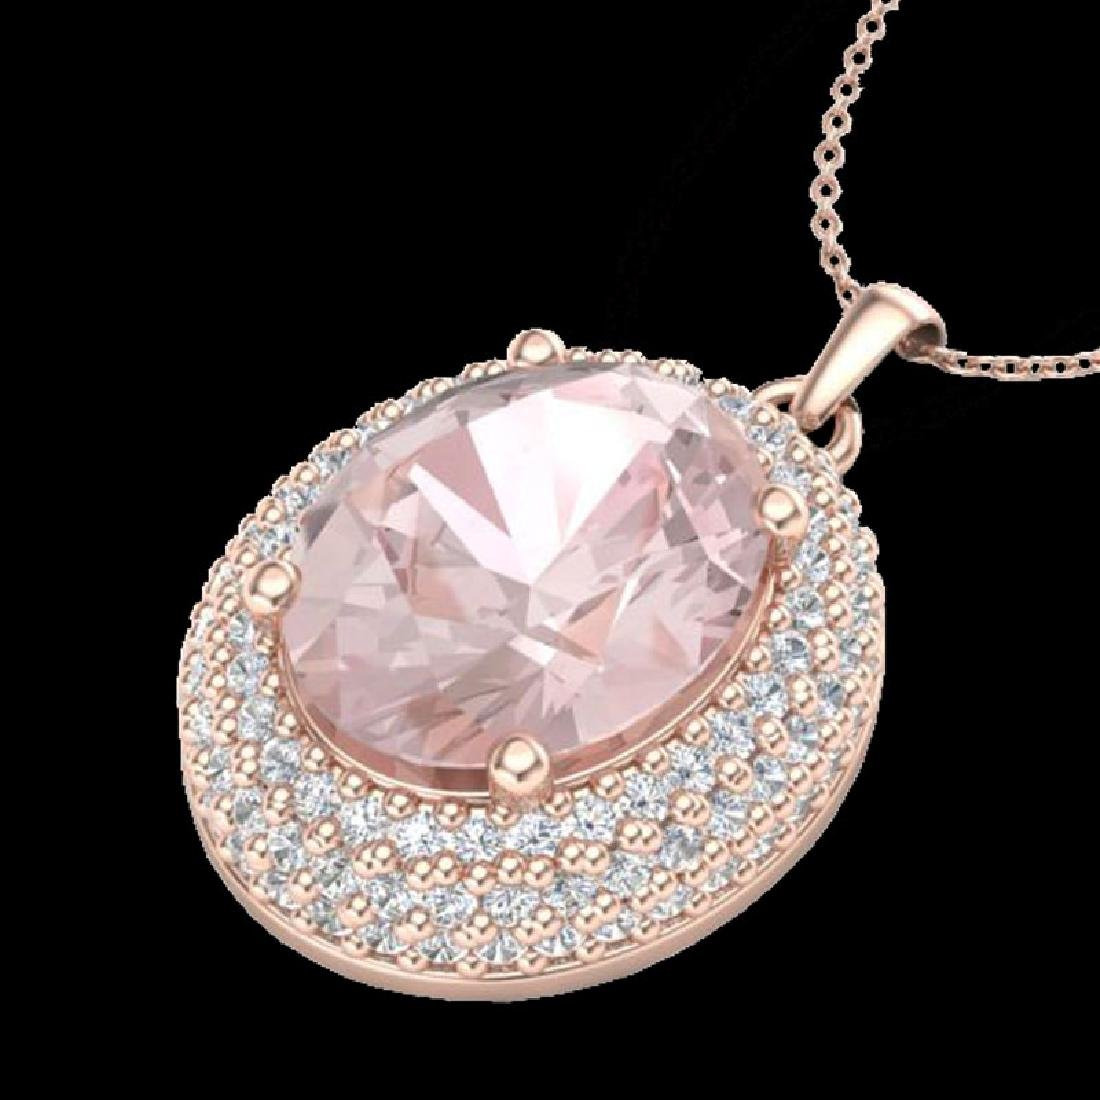 4.50 CTW Morganite & Micro Pave VS/SI Diamond Necklace - 2